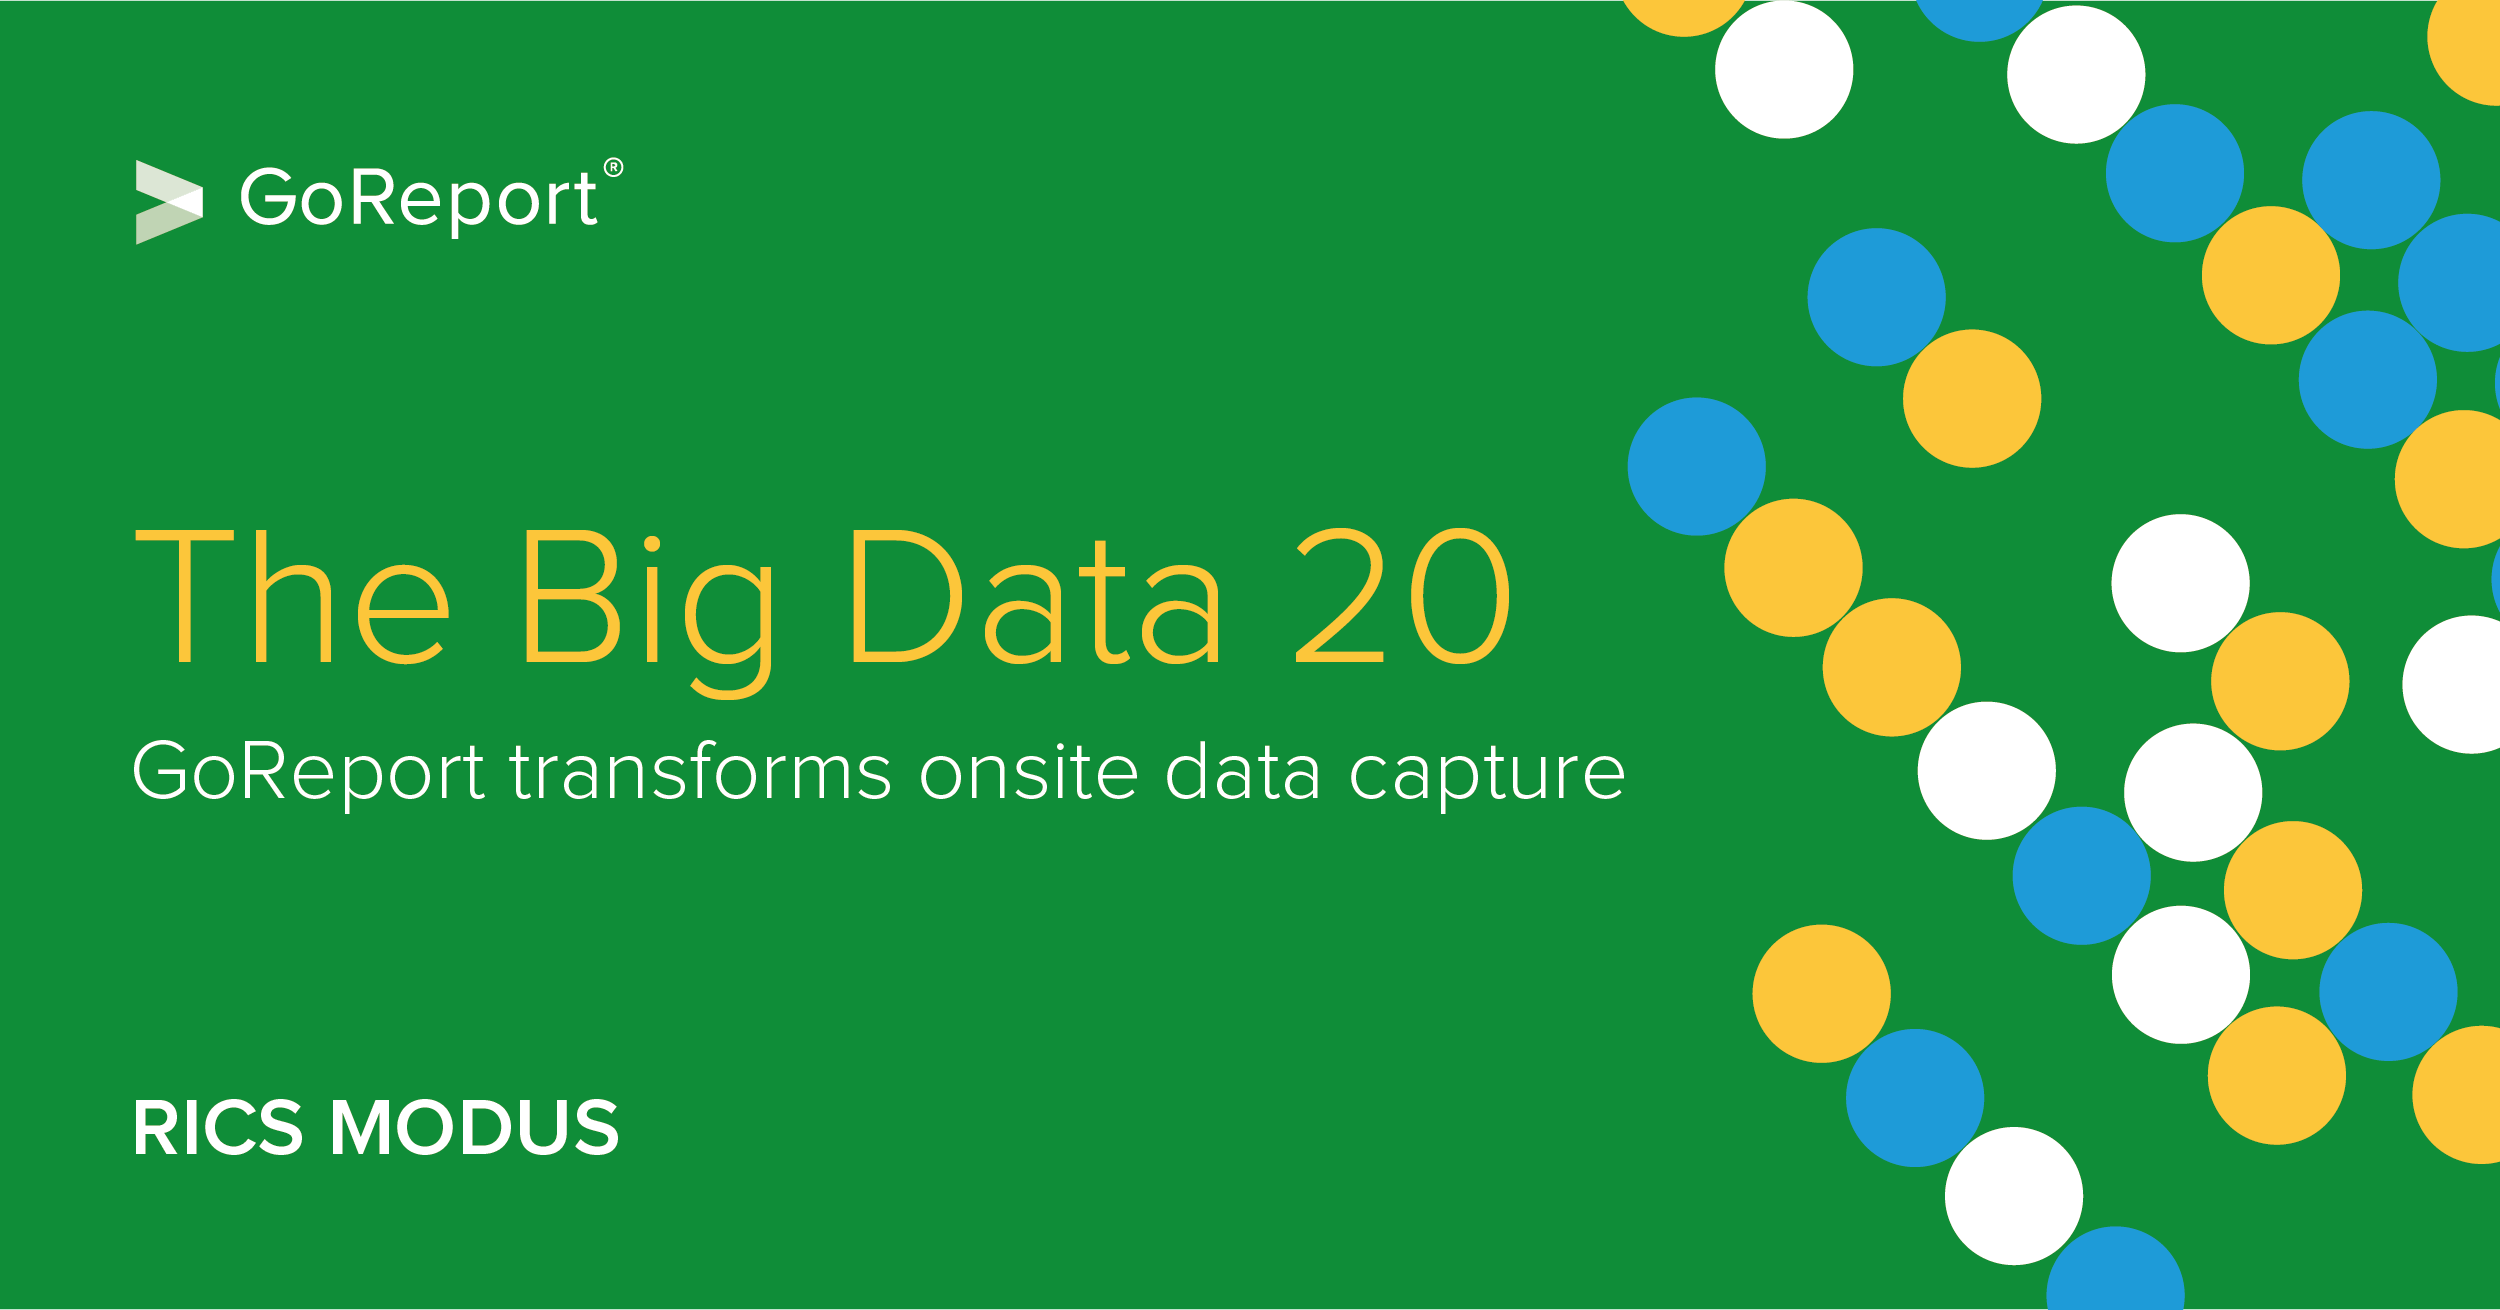 RICS Modus: The Big Data 20